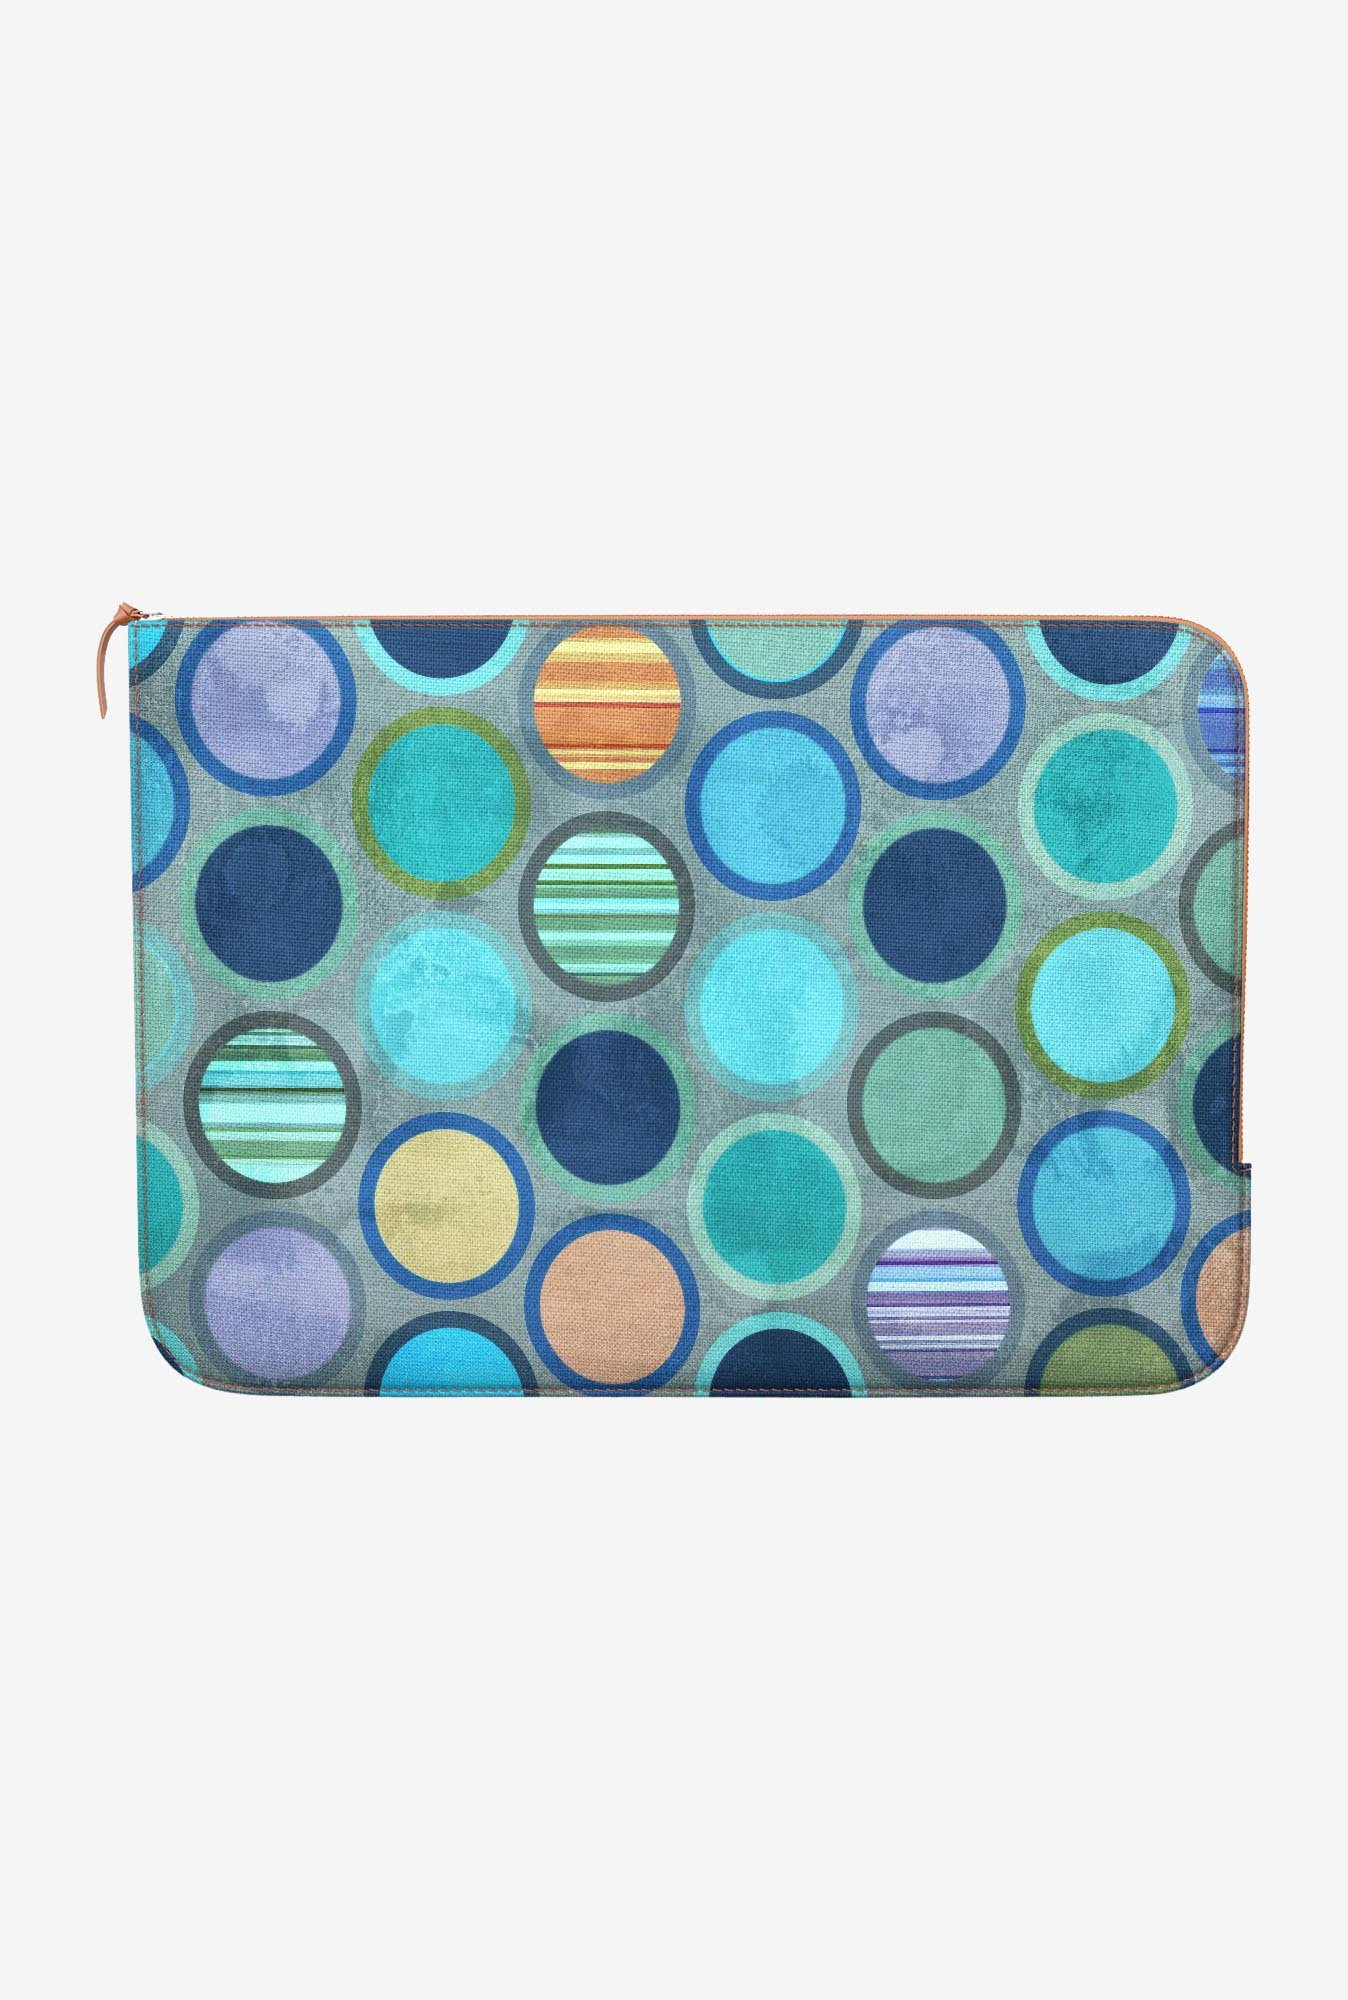 DailyObjects Paint Pots MacBook Pro 15 Zippered Sleeve